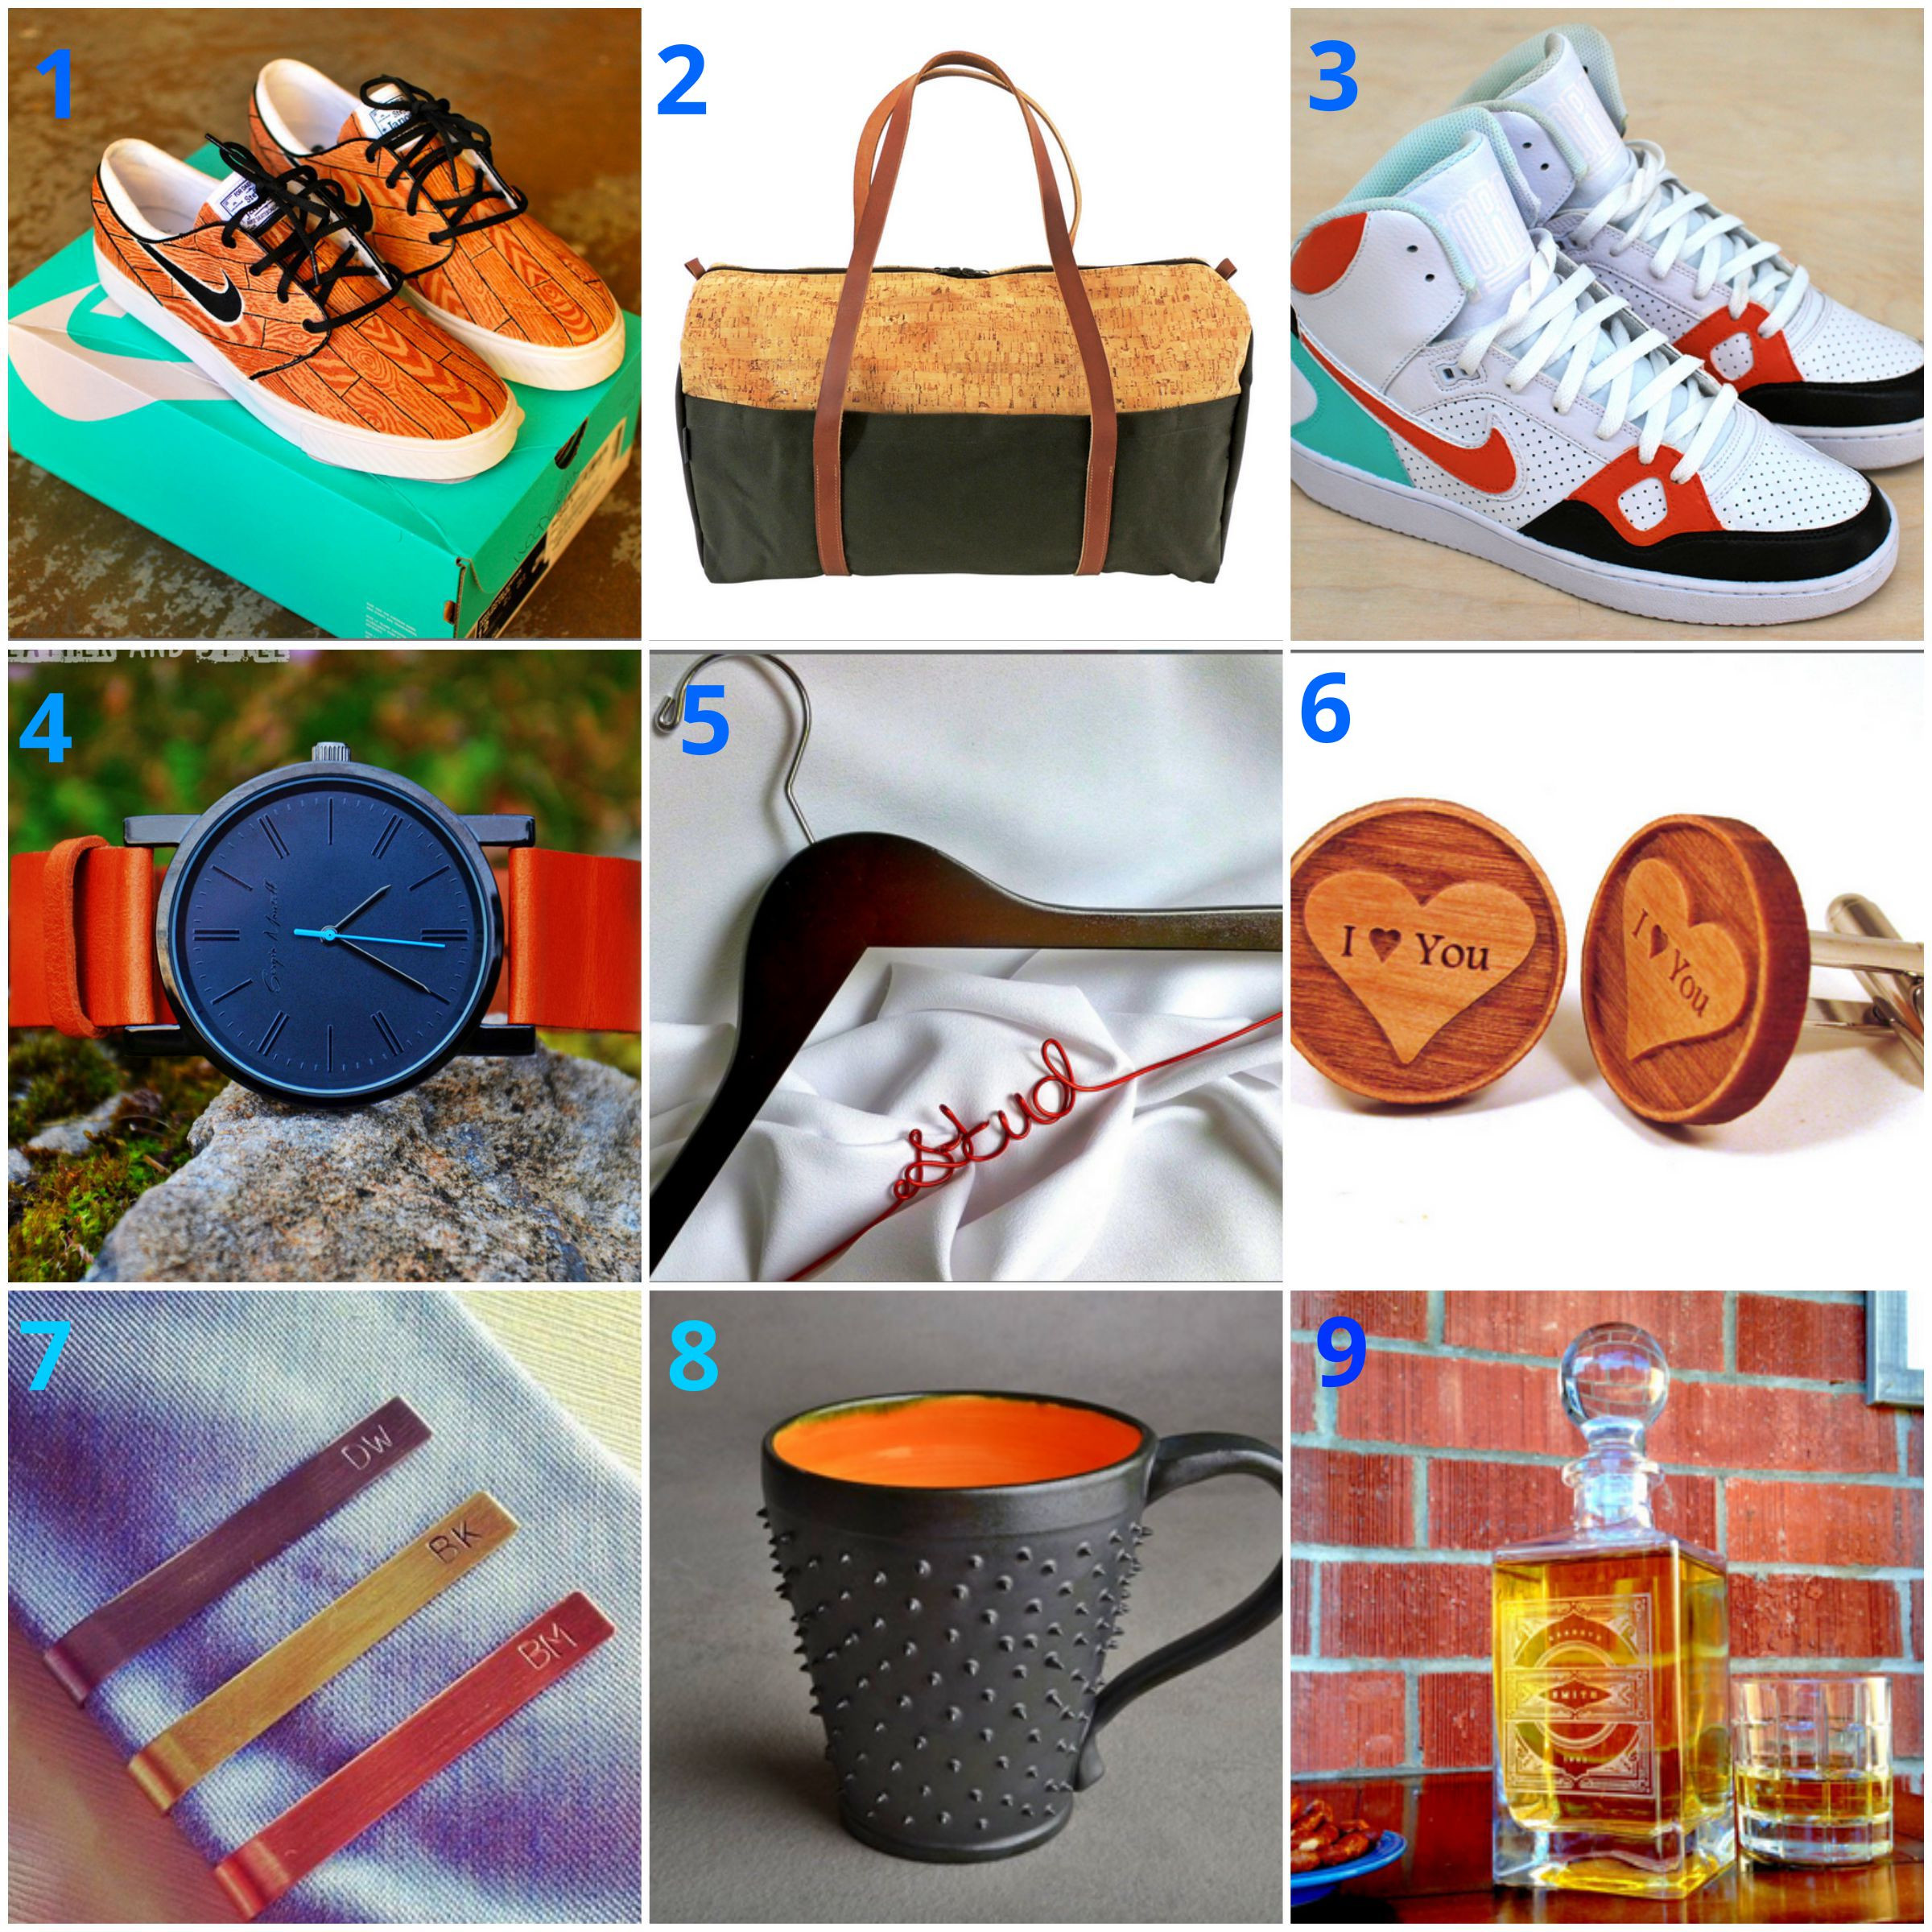 Valentines Gift Ideas For Guys  Valentine's Day Gift Ideas For Men 2